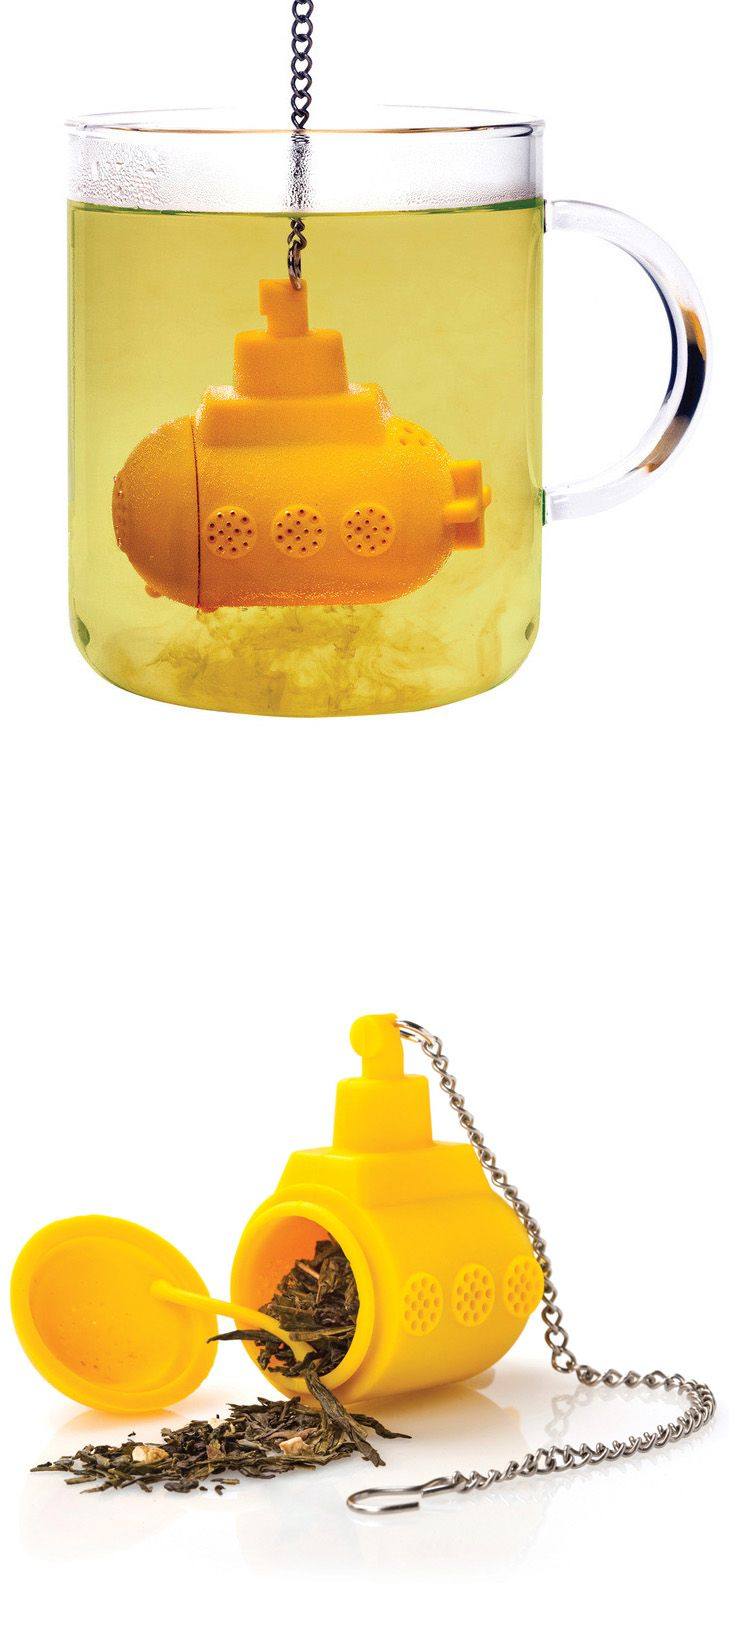 """Submarine Tea Infuser - This is awesome! """"We all [drink out of a] yellow submarine!"""" @ Lisa Szymanski"""